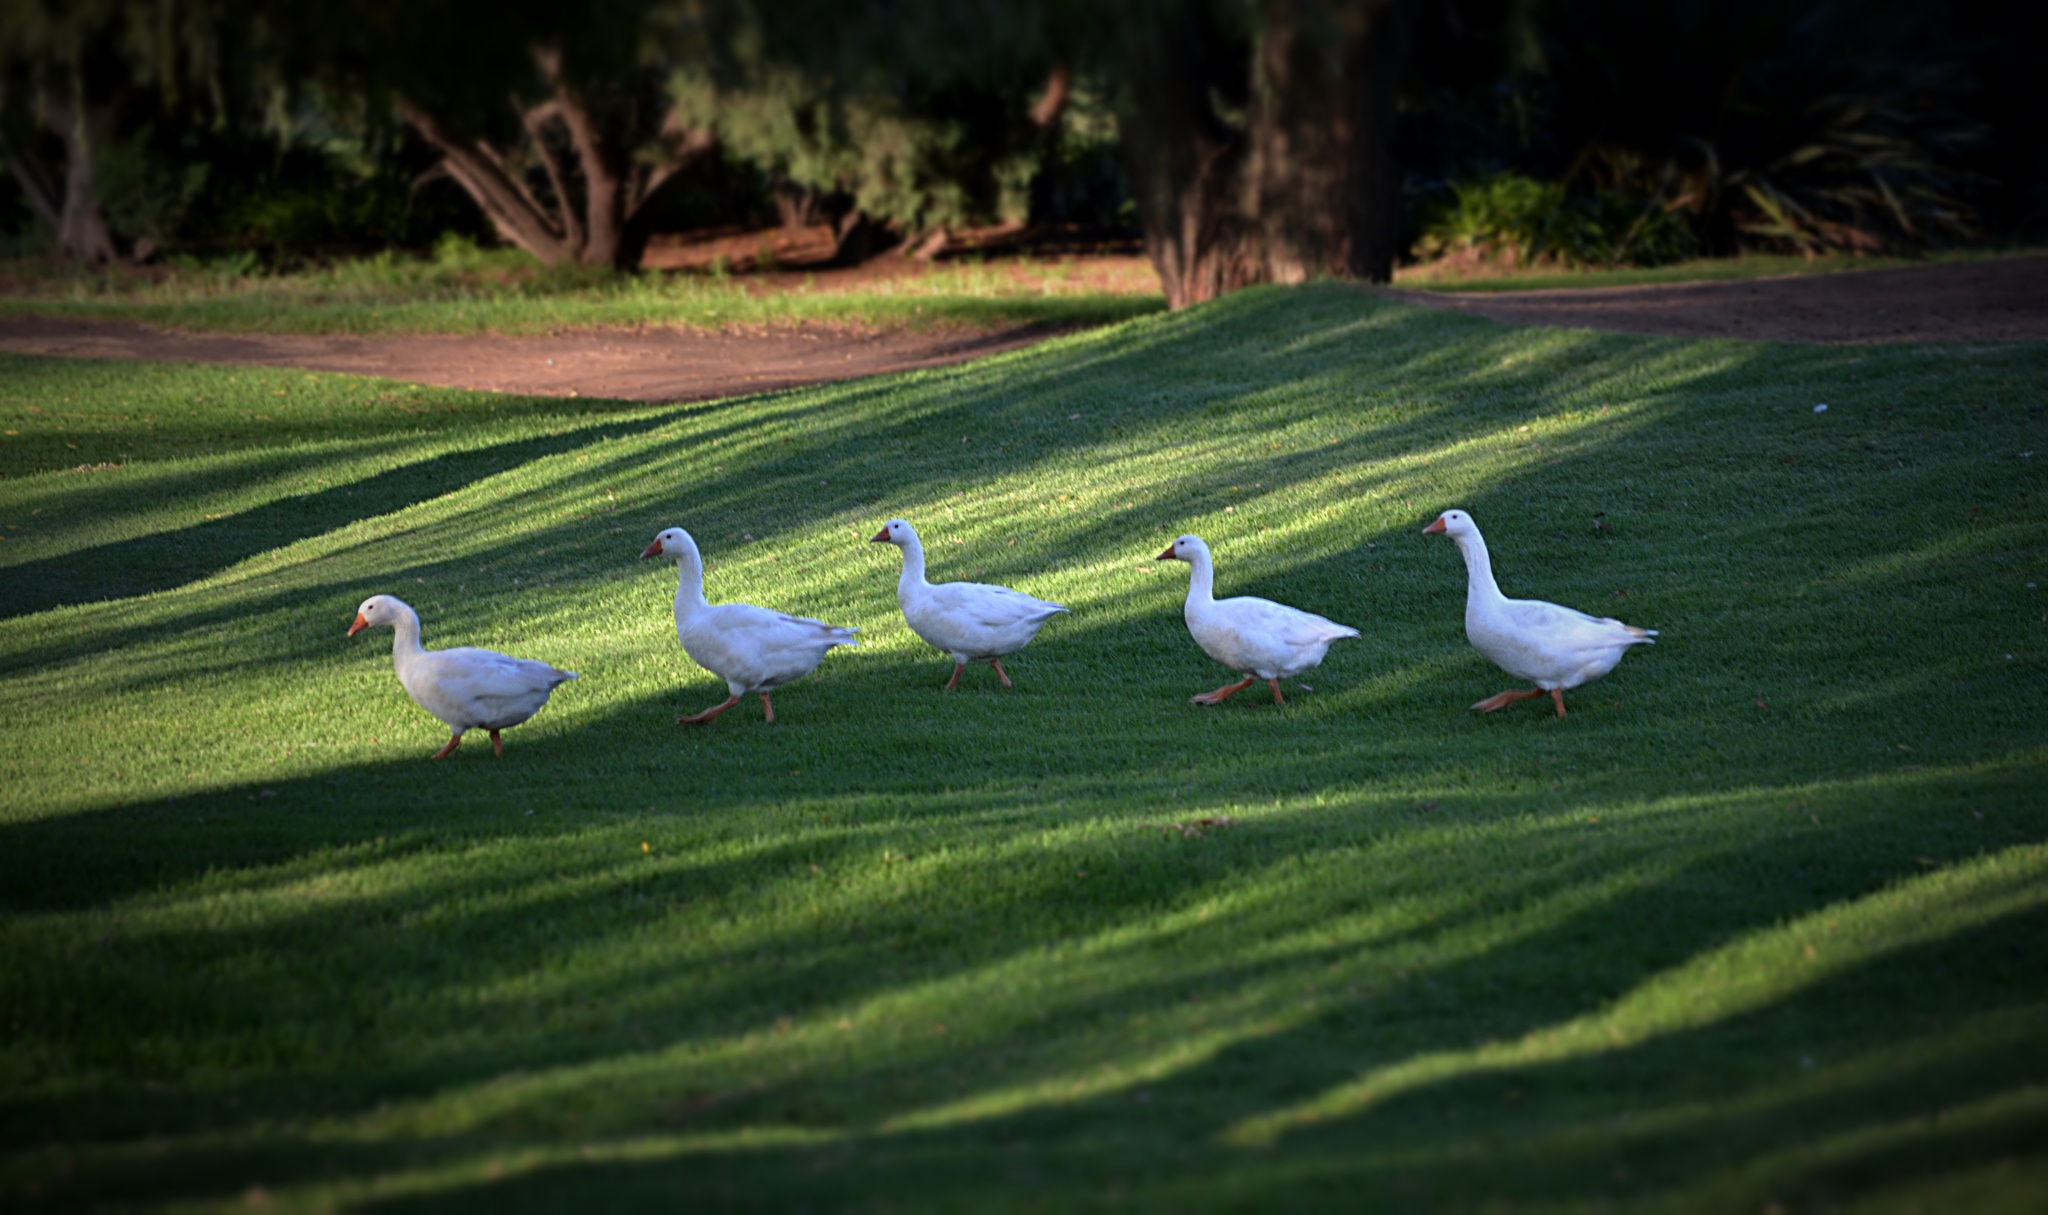 A Gaggle of Geese by MichelleL